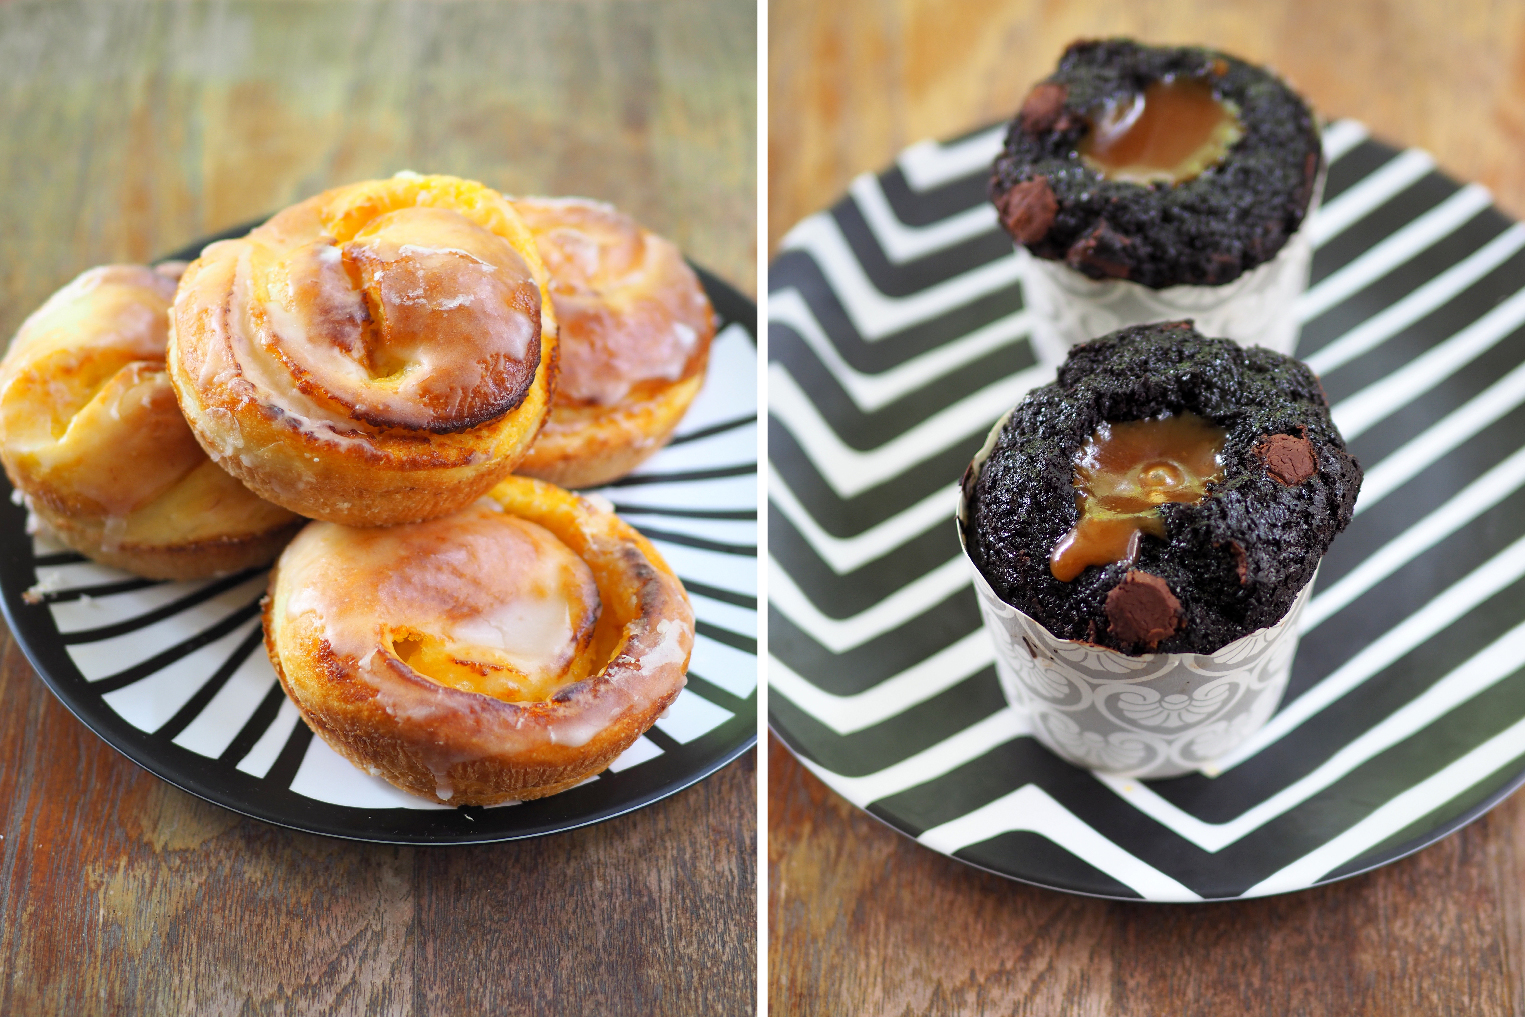 Lemon soft roll is a little doughy but there's a light citrus glaze over it for something different (left). Chocolate muffins have a fluffy texture but not overly rich chocolate taste balanced by a pool of caramel to give it a slight sweetness (right)